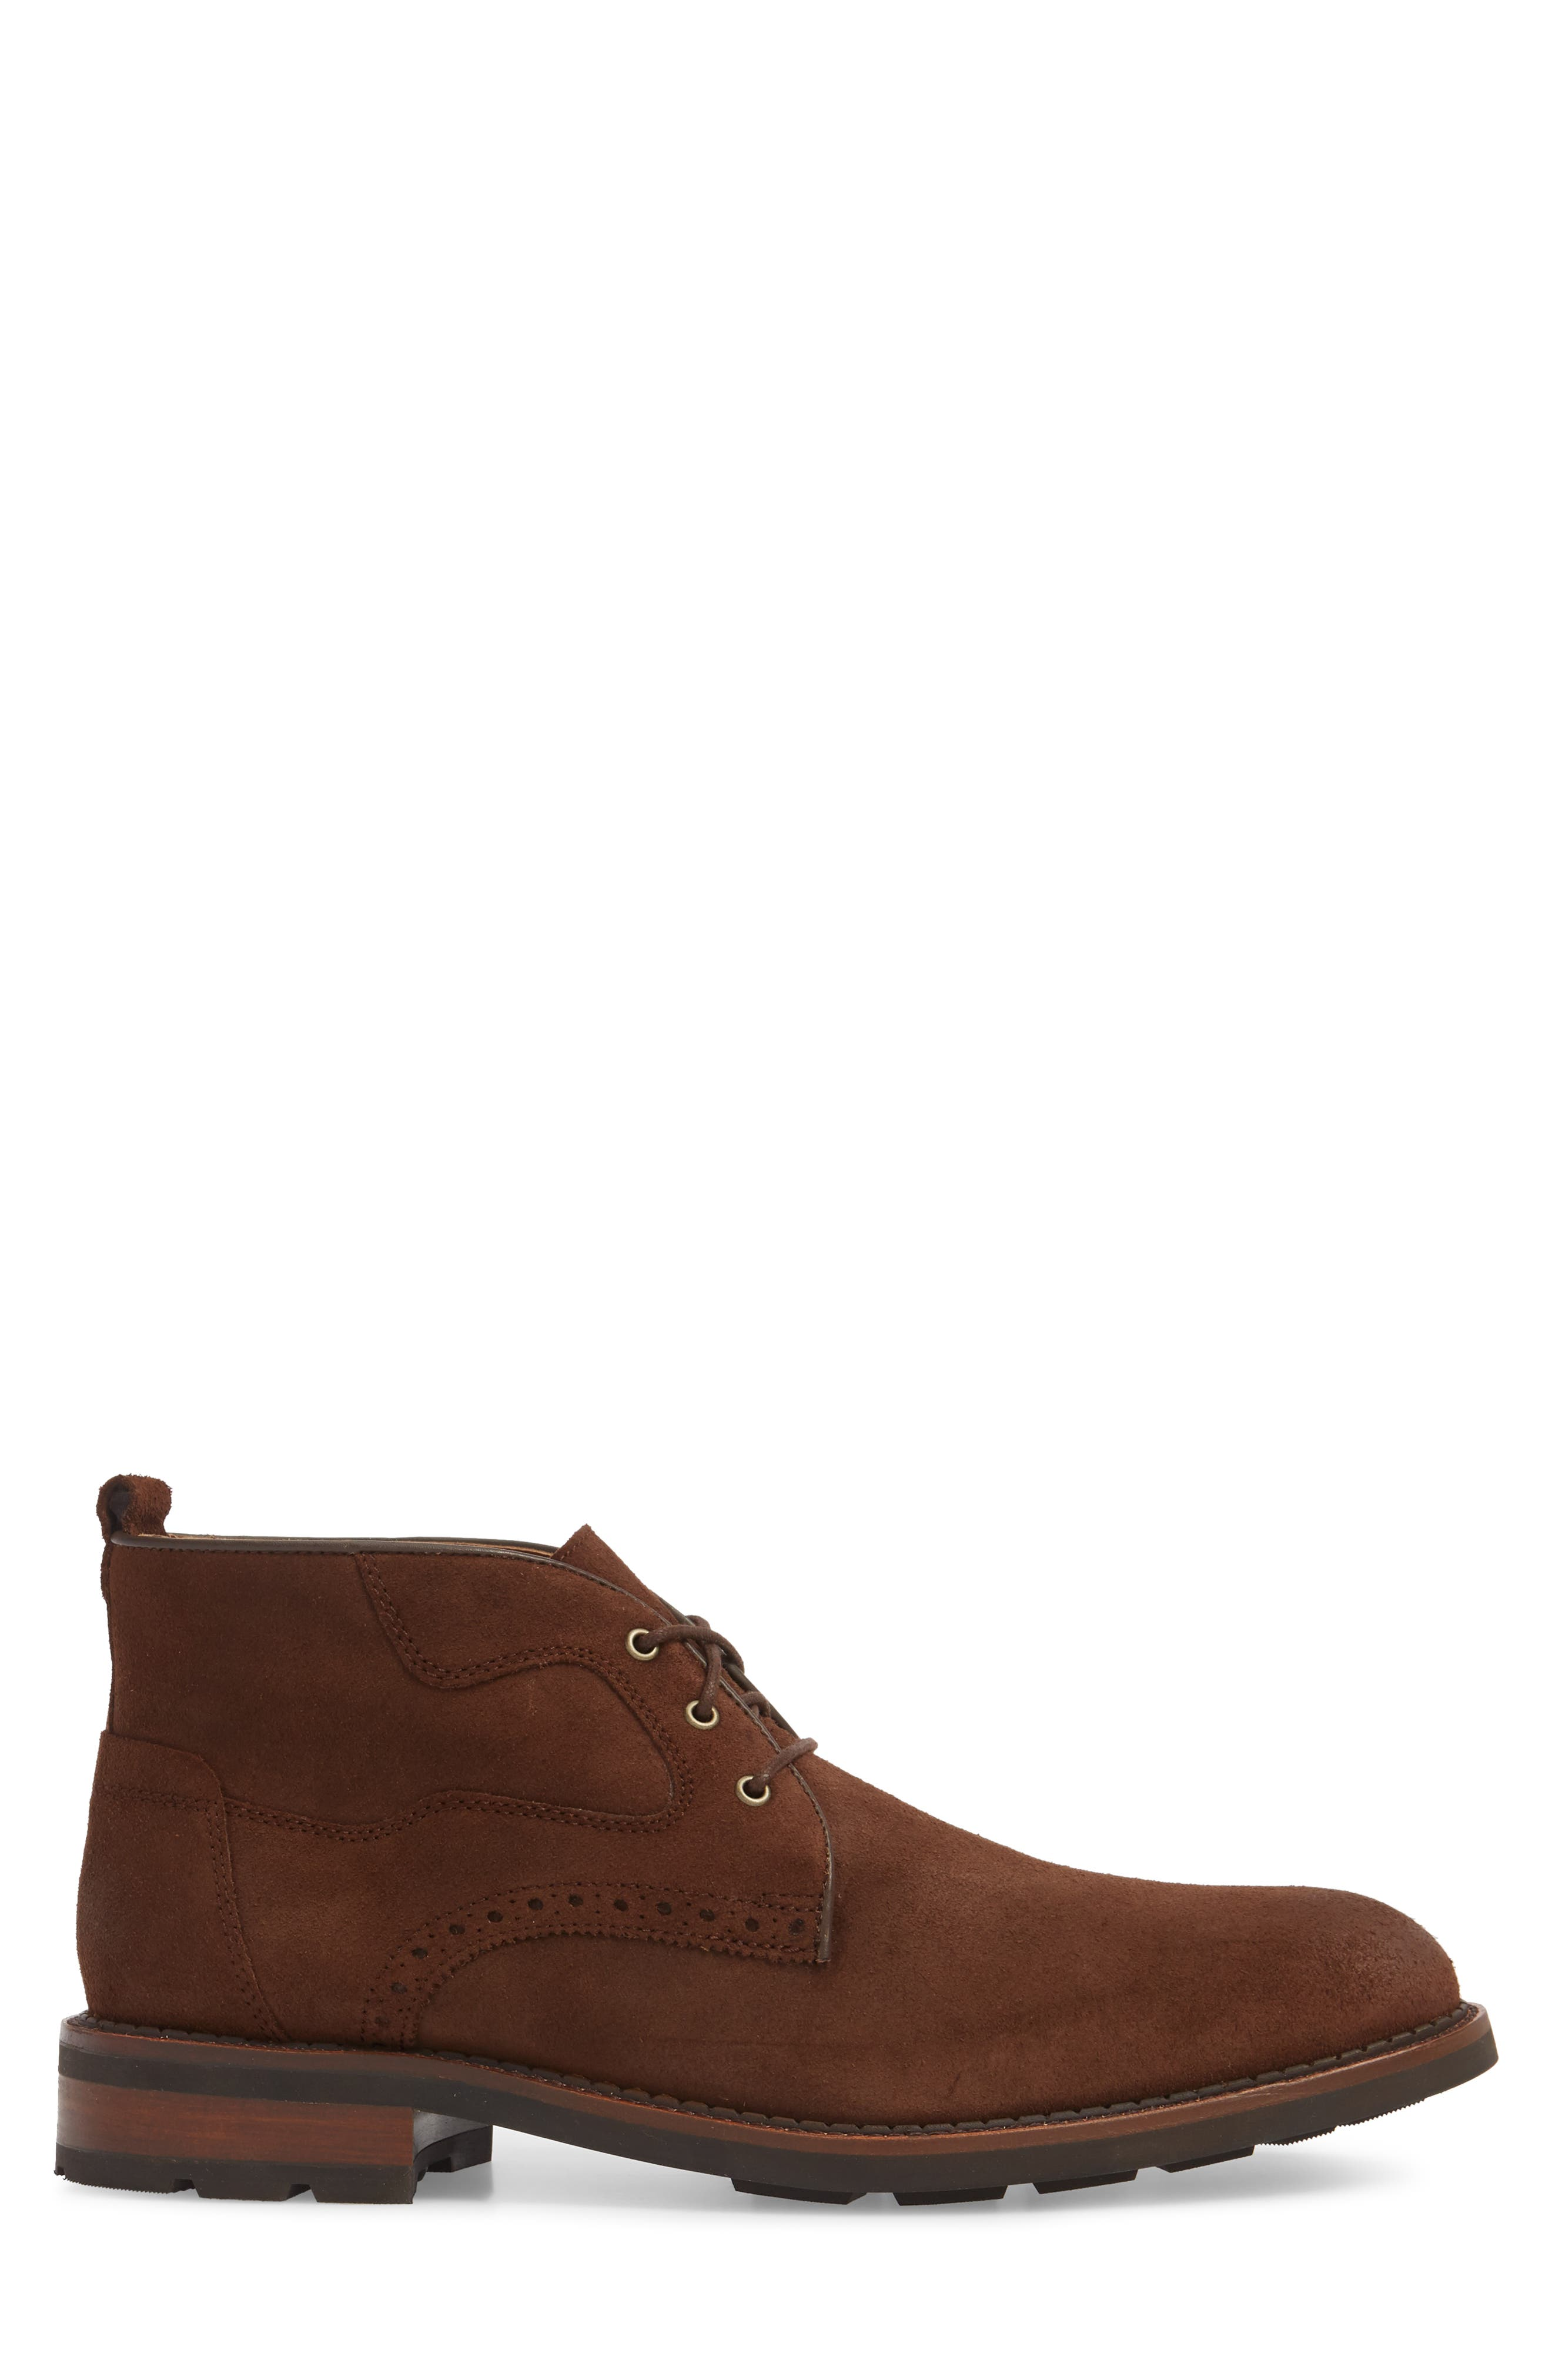 Fullerton Chukka Boot,                             Alternate thumbnail 3, color,                             Dark Brown